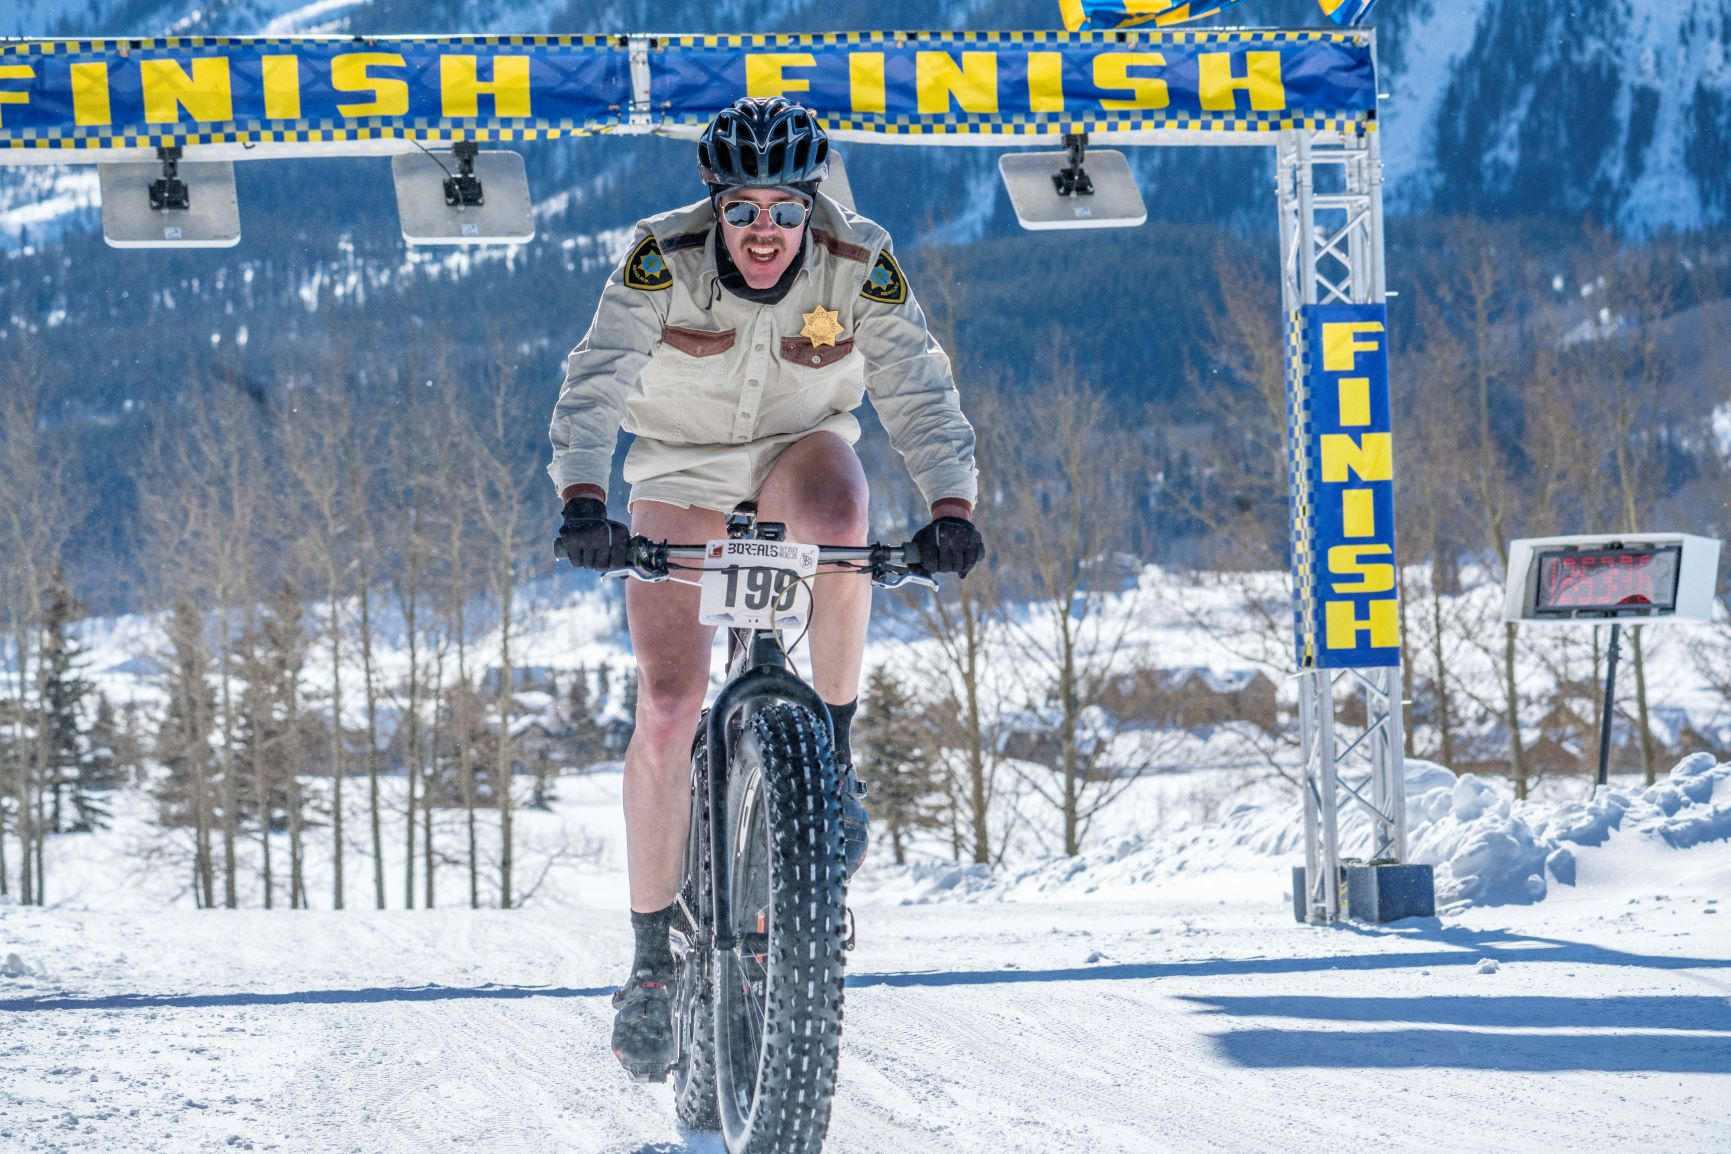 Crested Butte Fat Bike World Championships